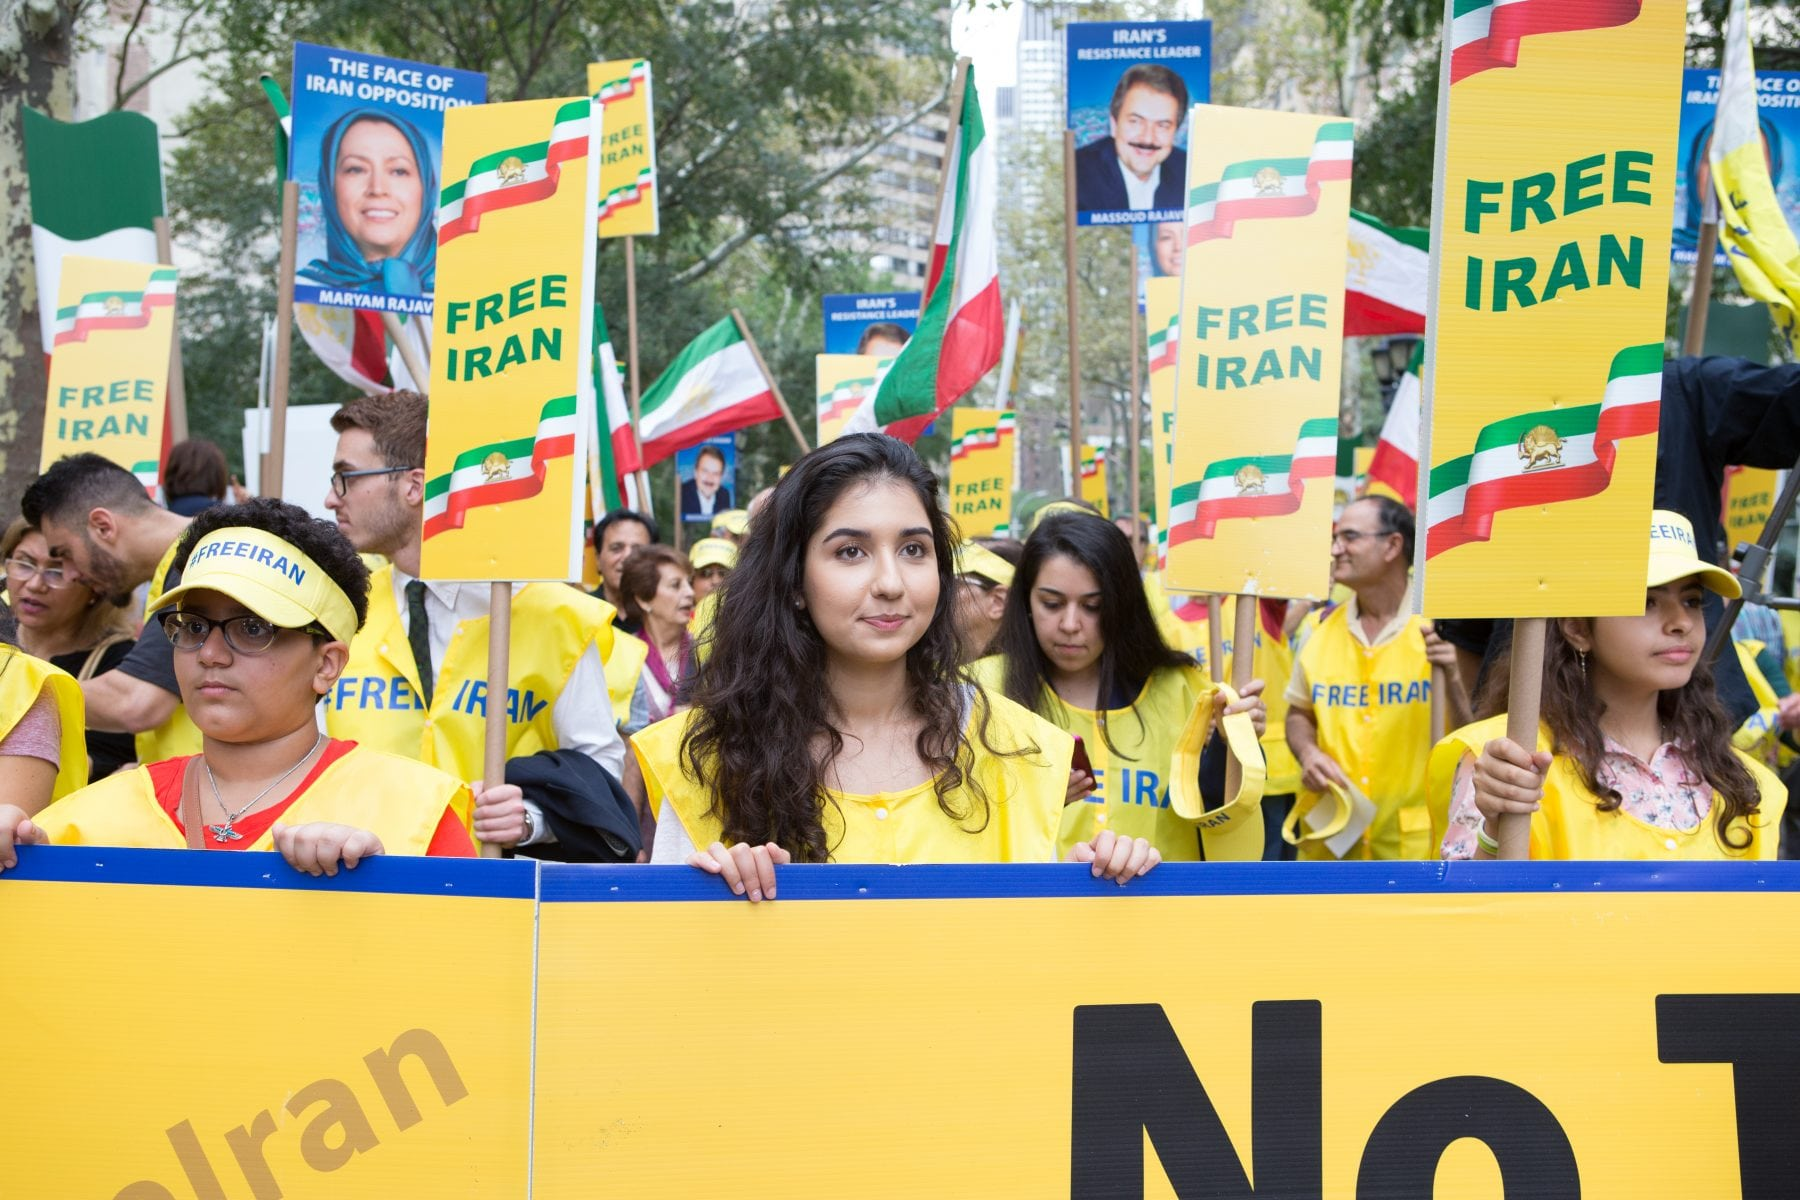 Protesting for a Free Iran at the UN